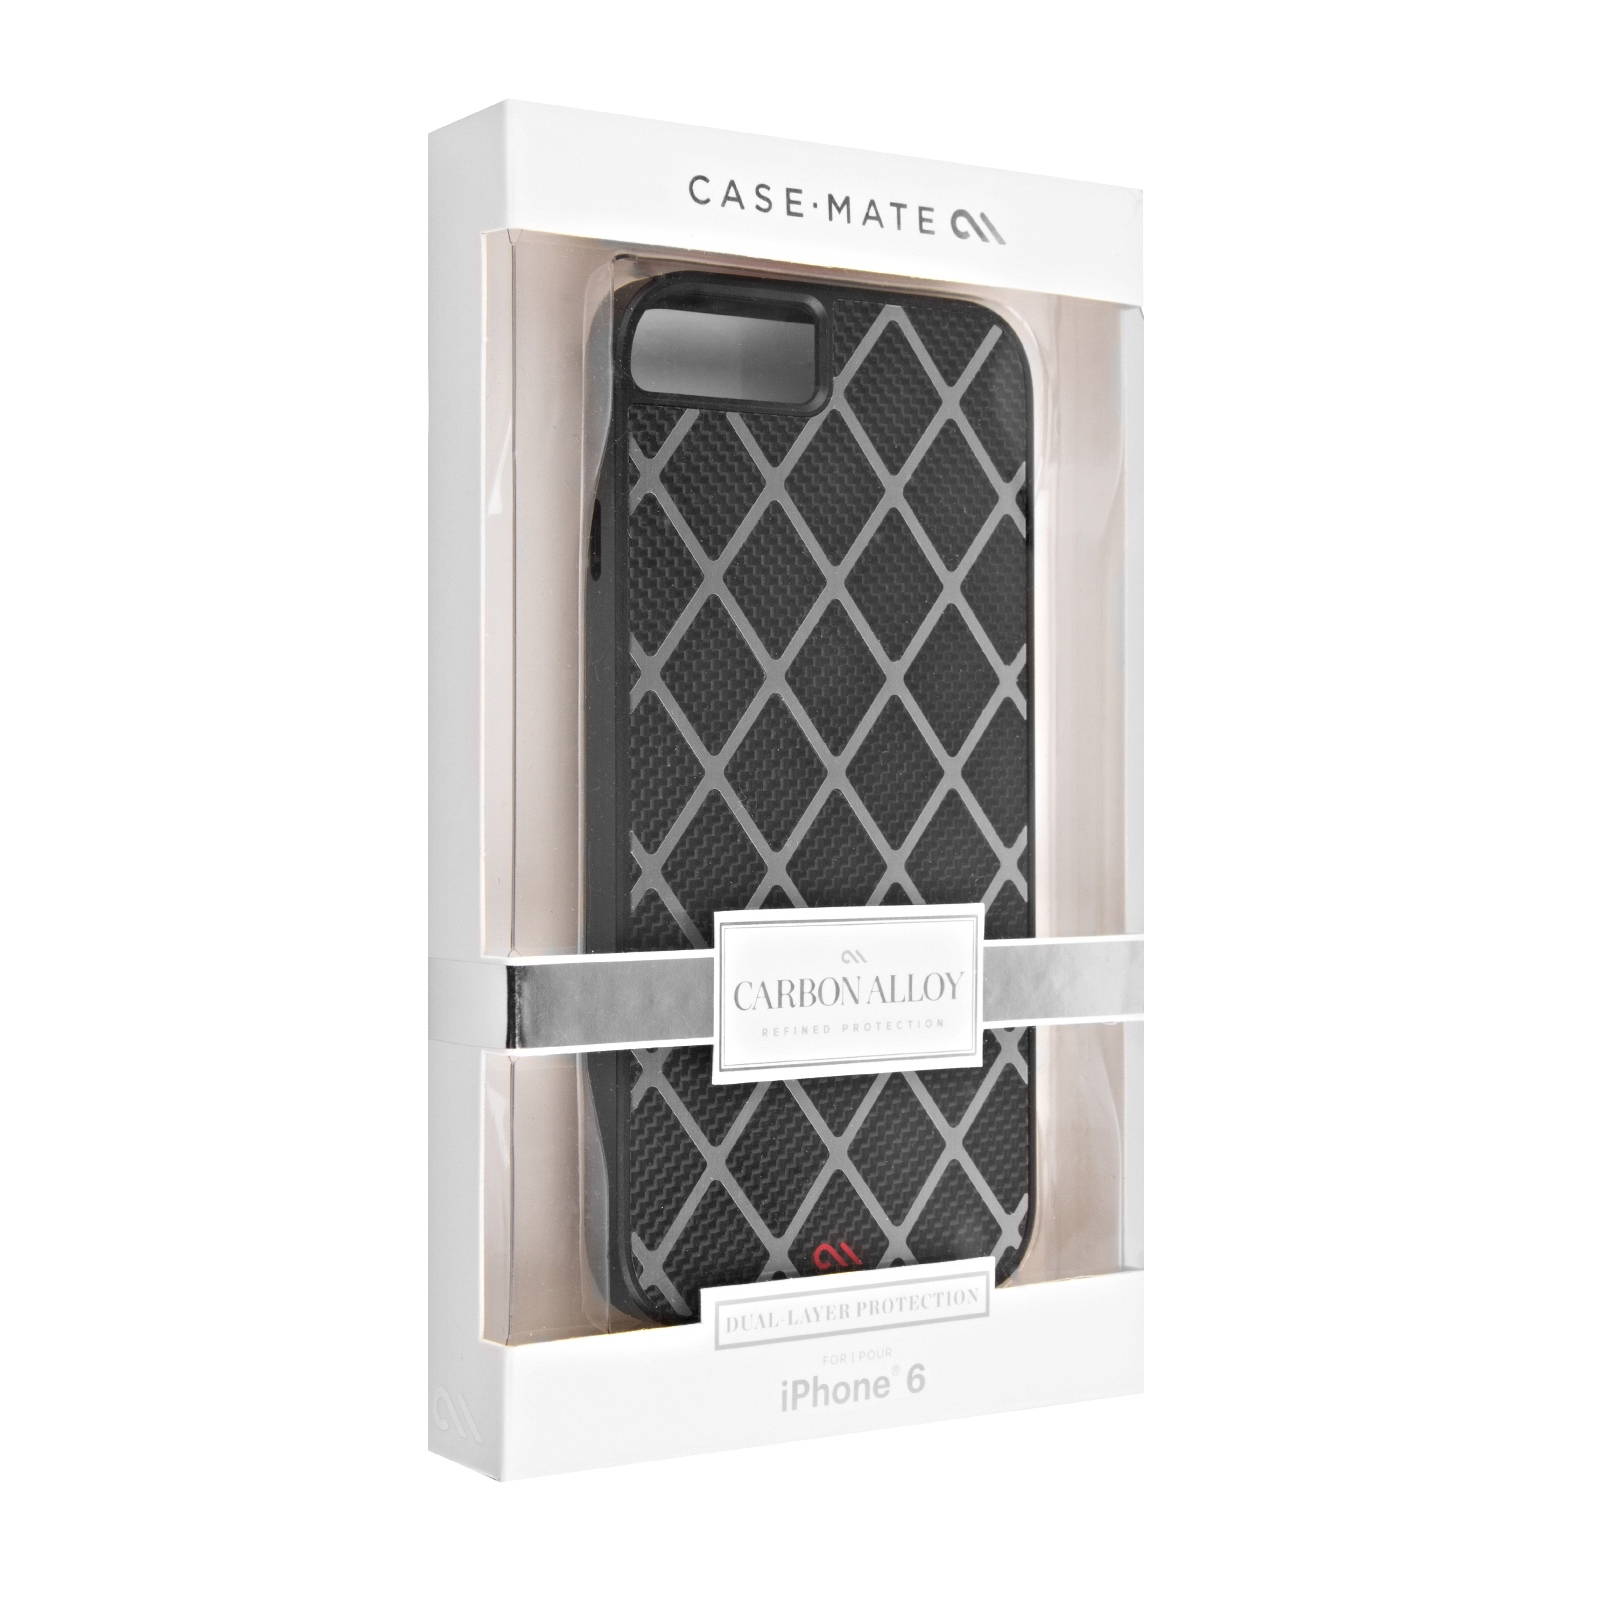 Case-Mate Carbon Alloy Carrying Case for iPhone 6 (Matt Black)